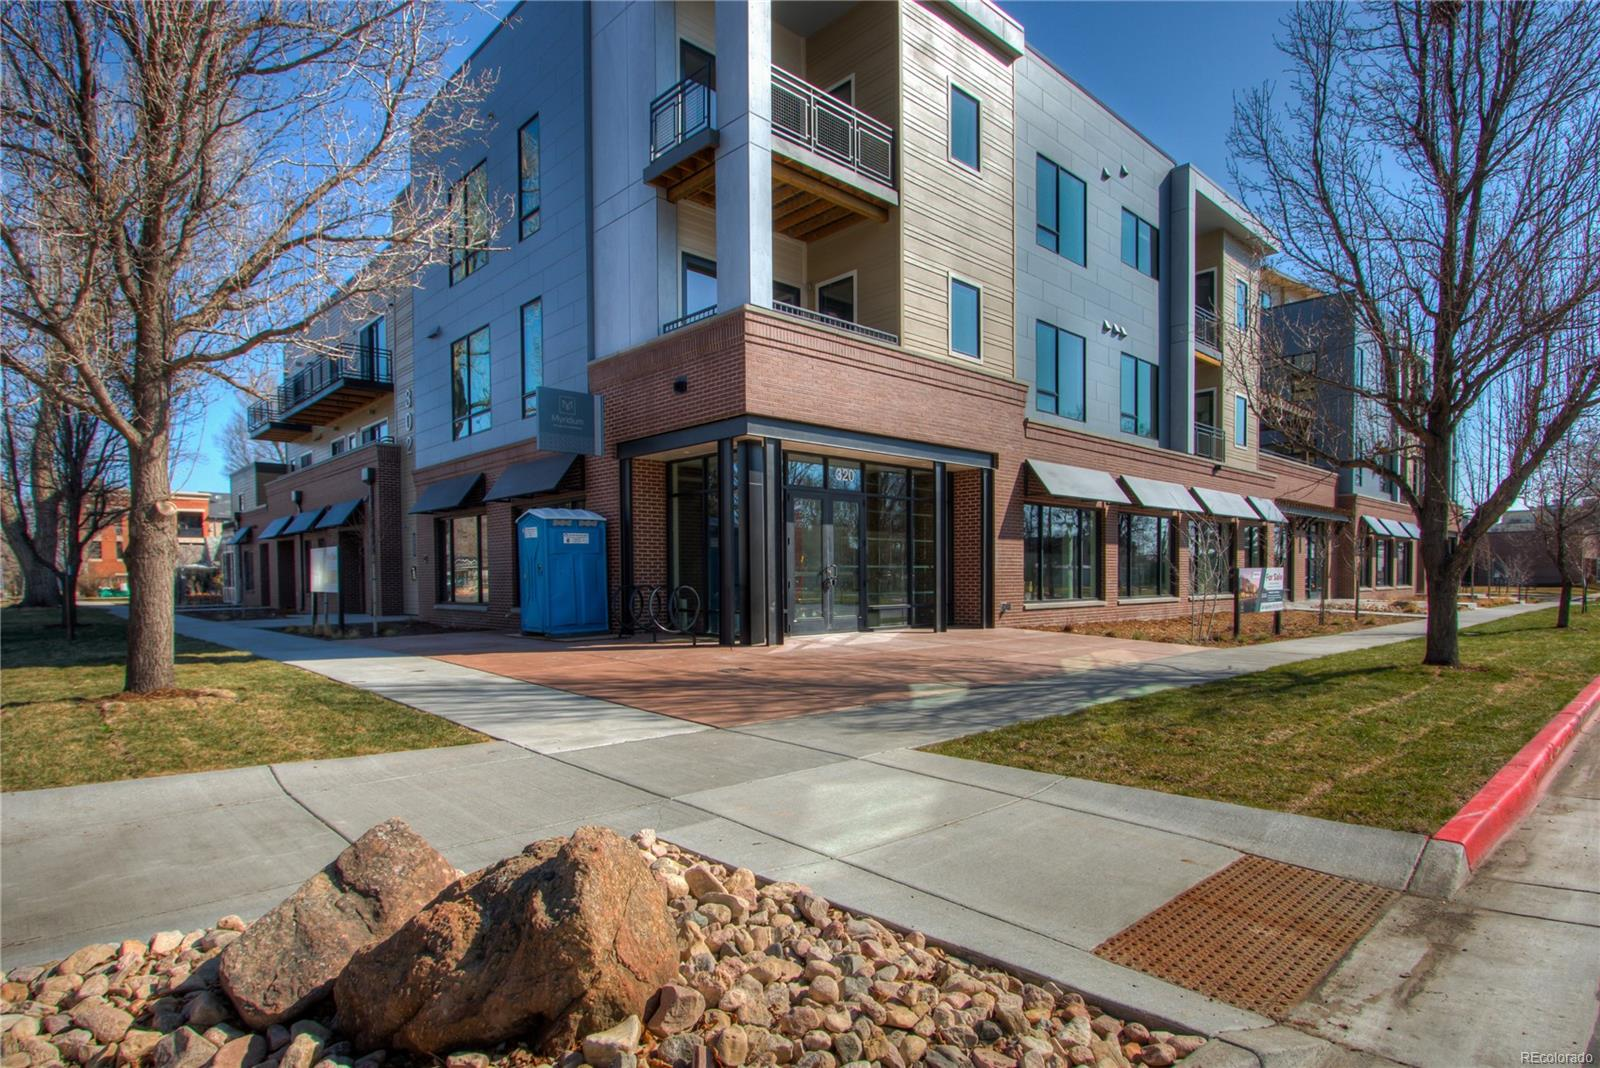 302 Meldrum Street #304, Fort Collins, CO 80521 - Fort Collins, CO real estate listing